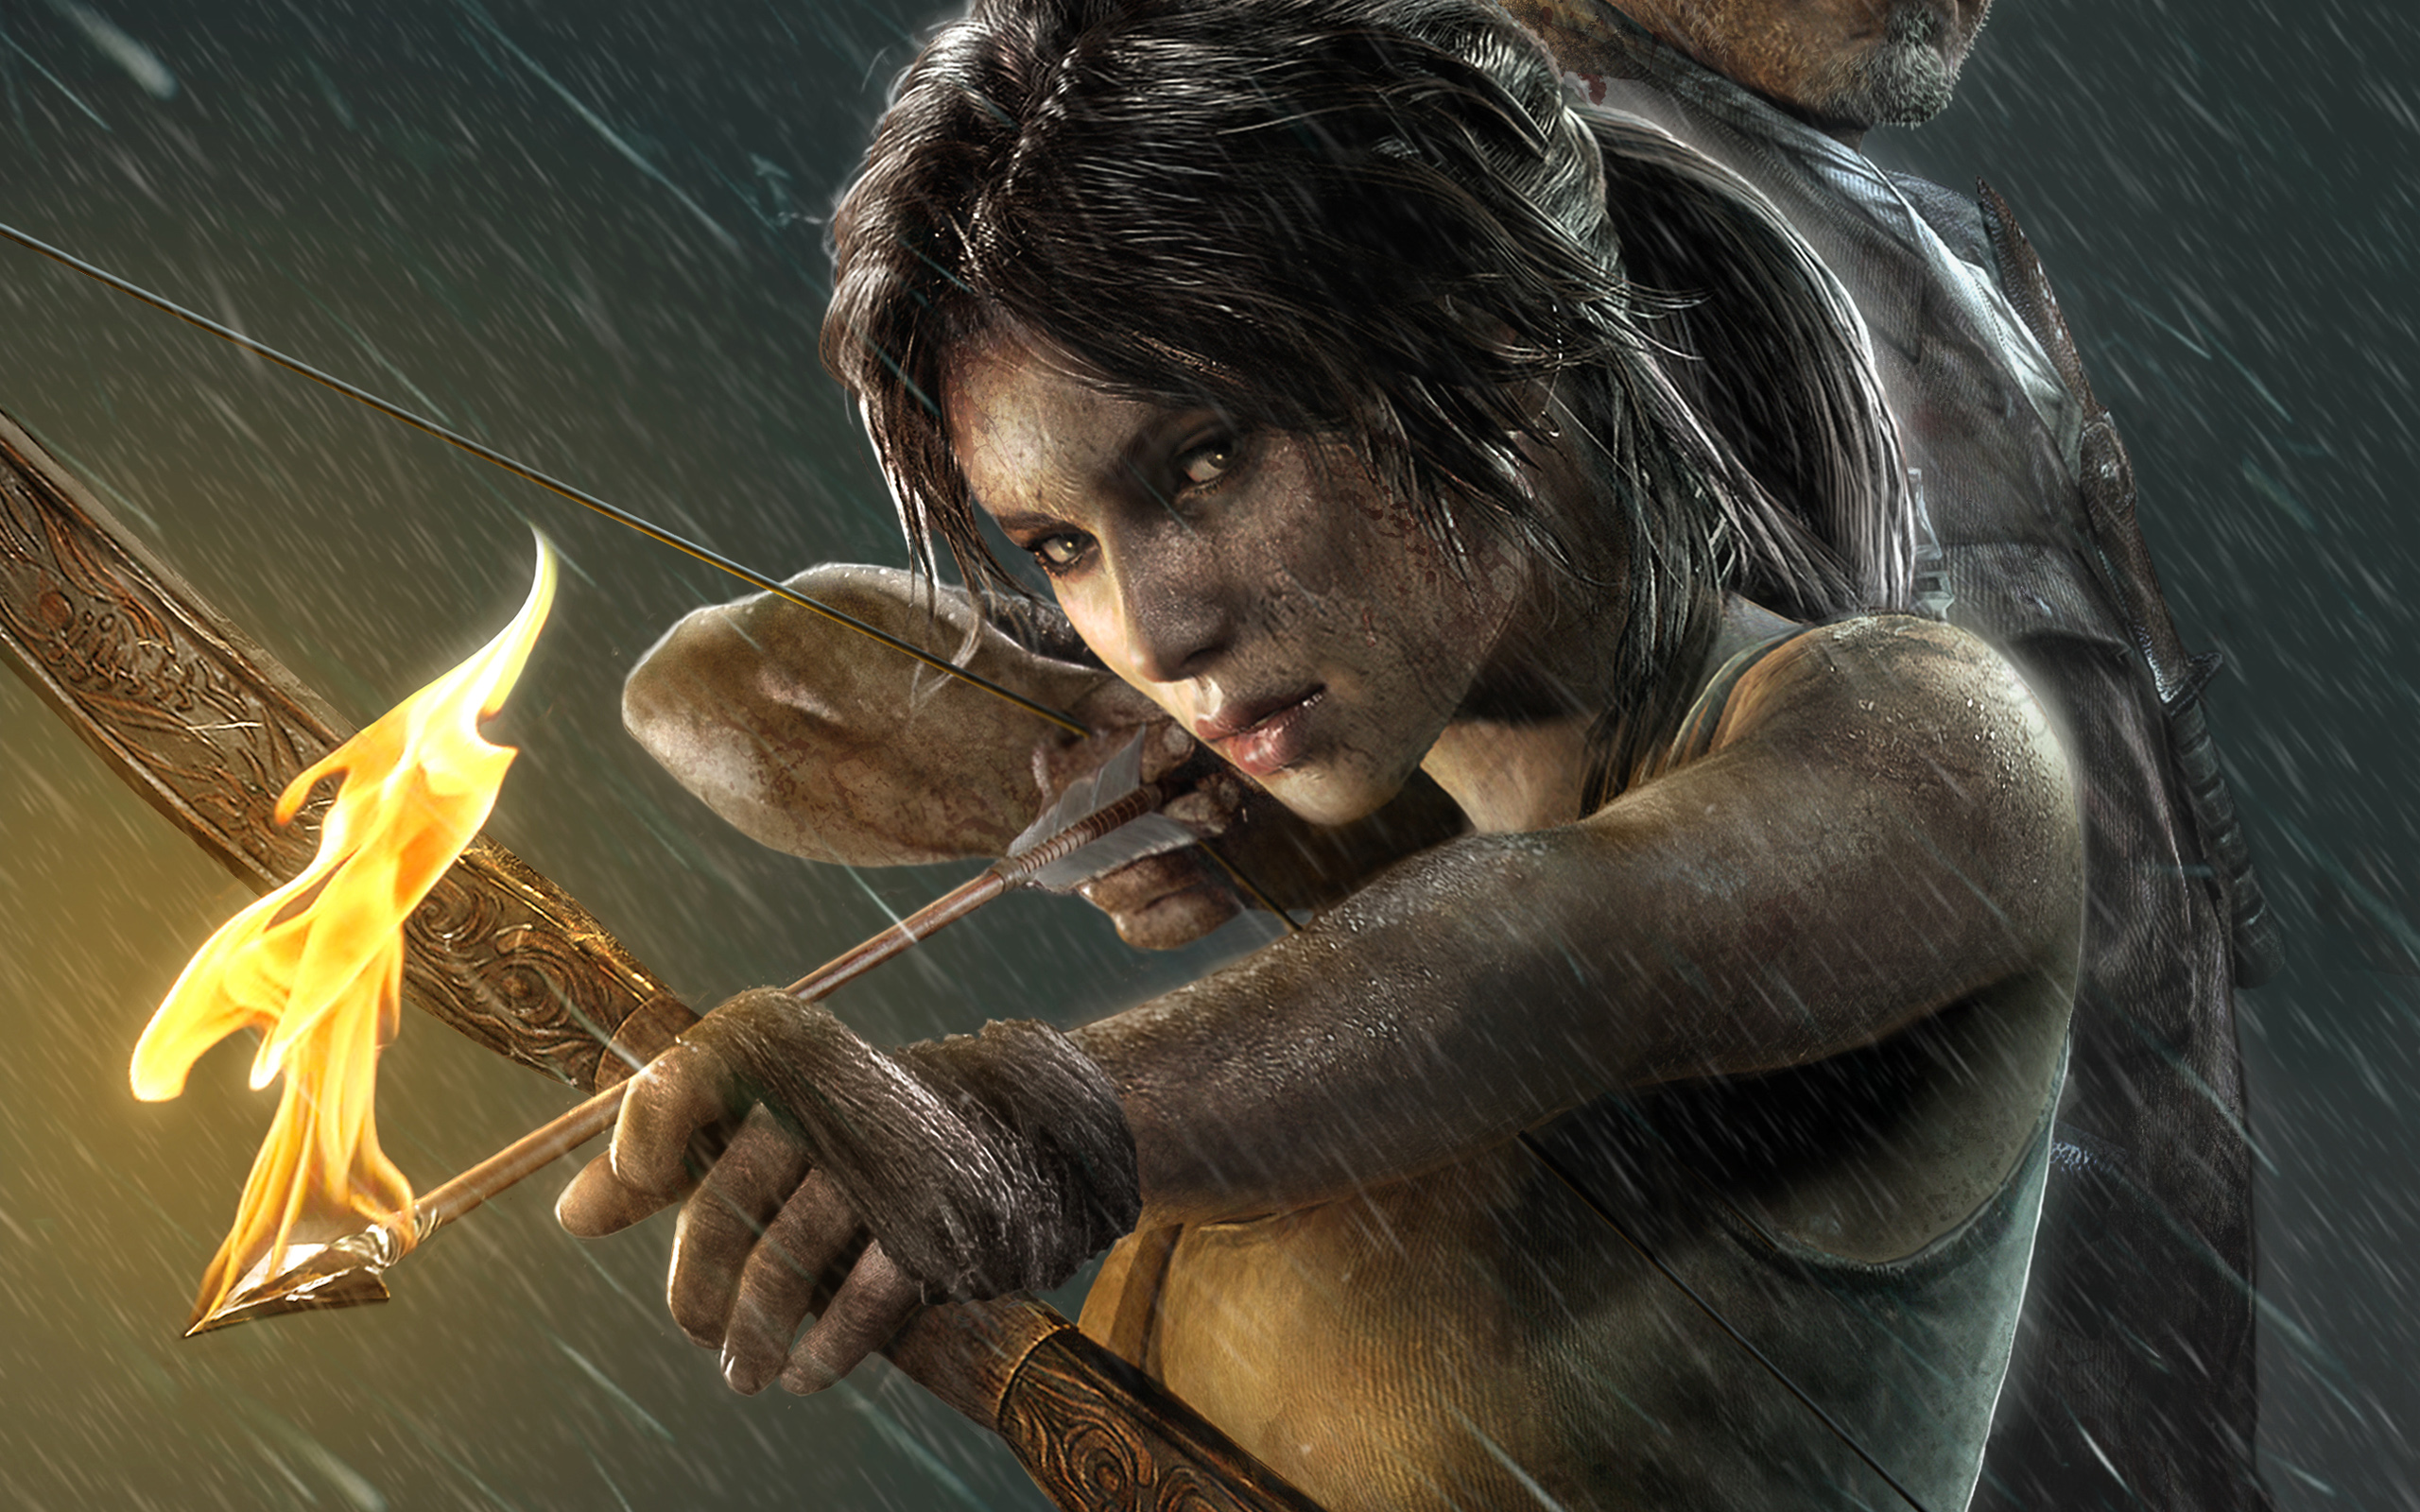 2013 Lara Croft Tomb Raider 1540.8 Kb